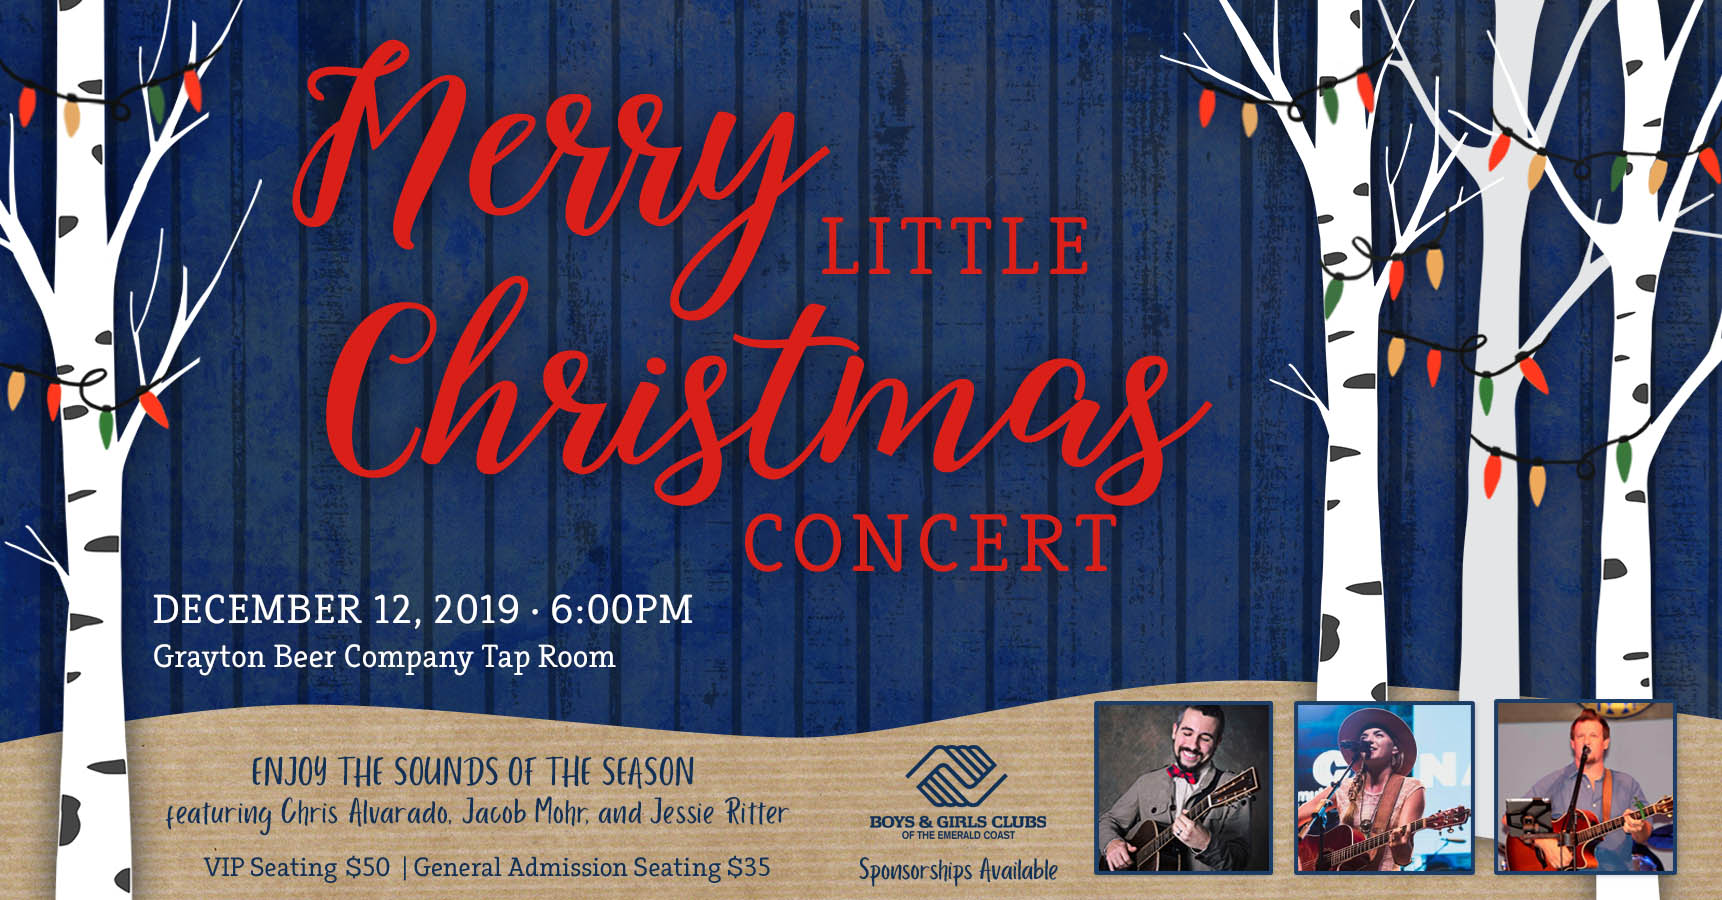 Christmas Concerts Near Me 2019 Merry Little Christmas Concert